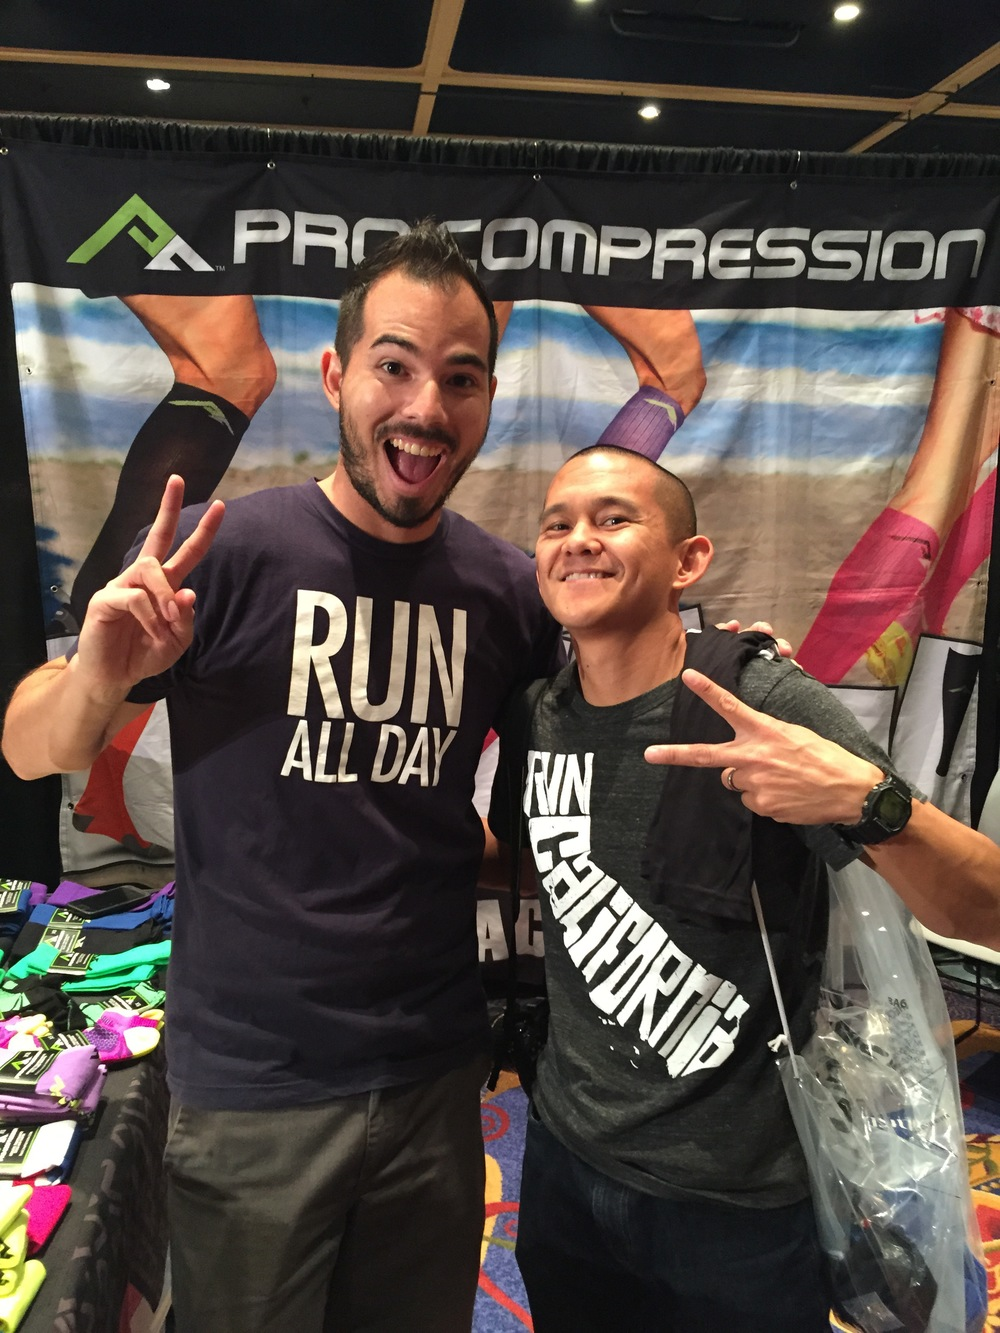 @pavementrunner workin' the ProCompression booth at the Avengers Half Expo